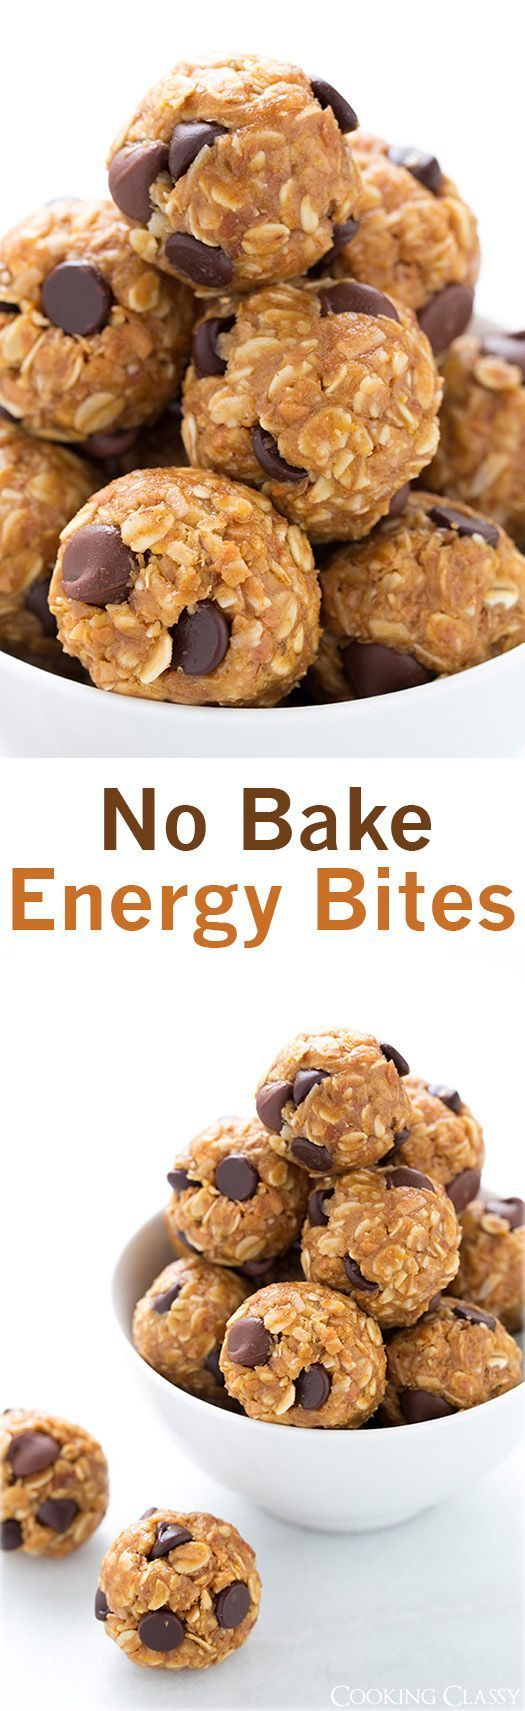 No Bake Energy Bites – these are the best snack EVER, and theyre healthy! I make them all the tim